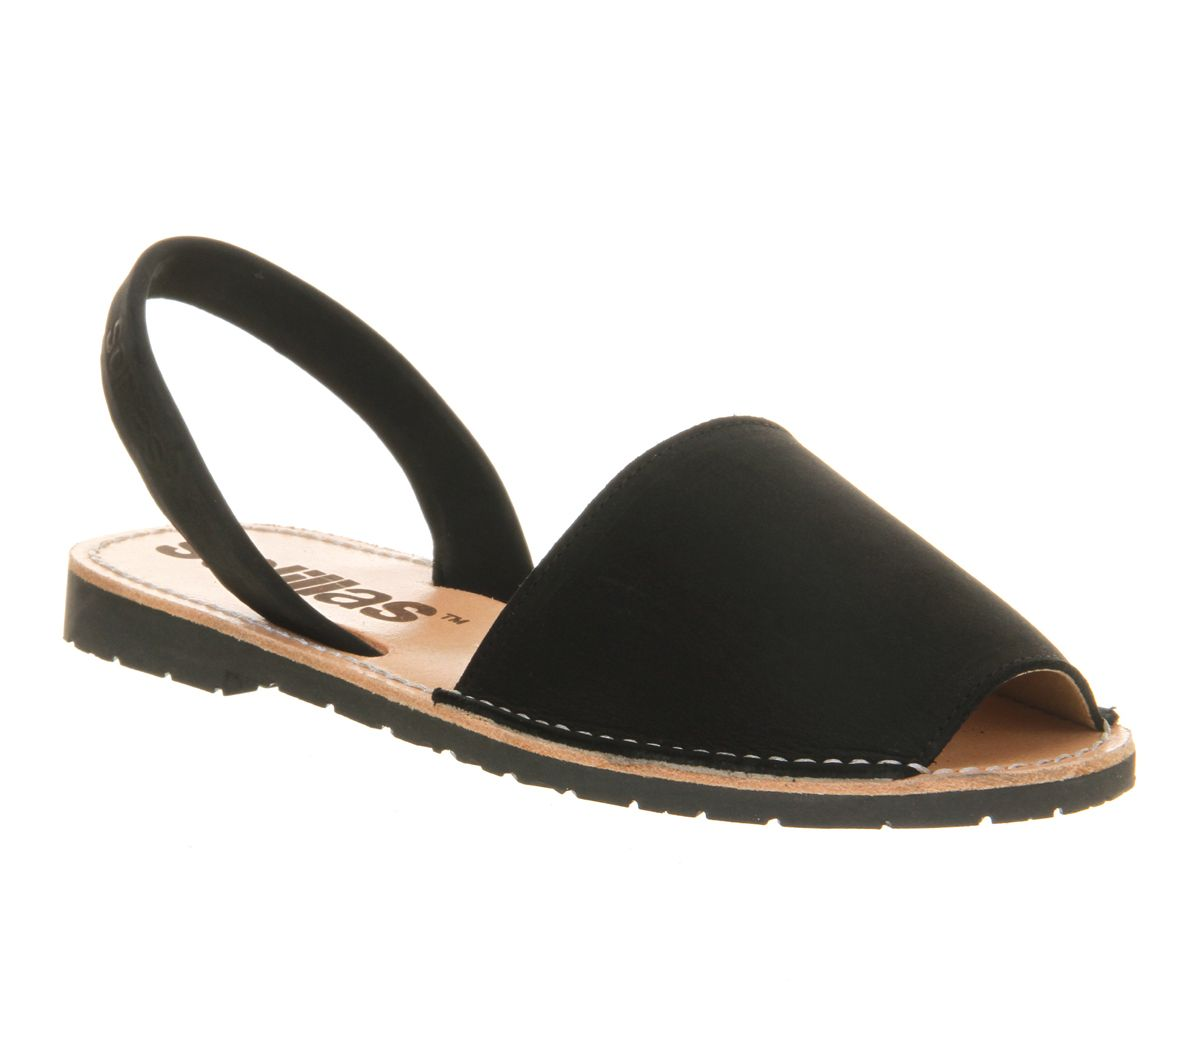 Solillas 2 part sandals, Black